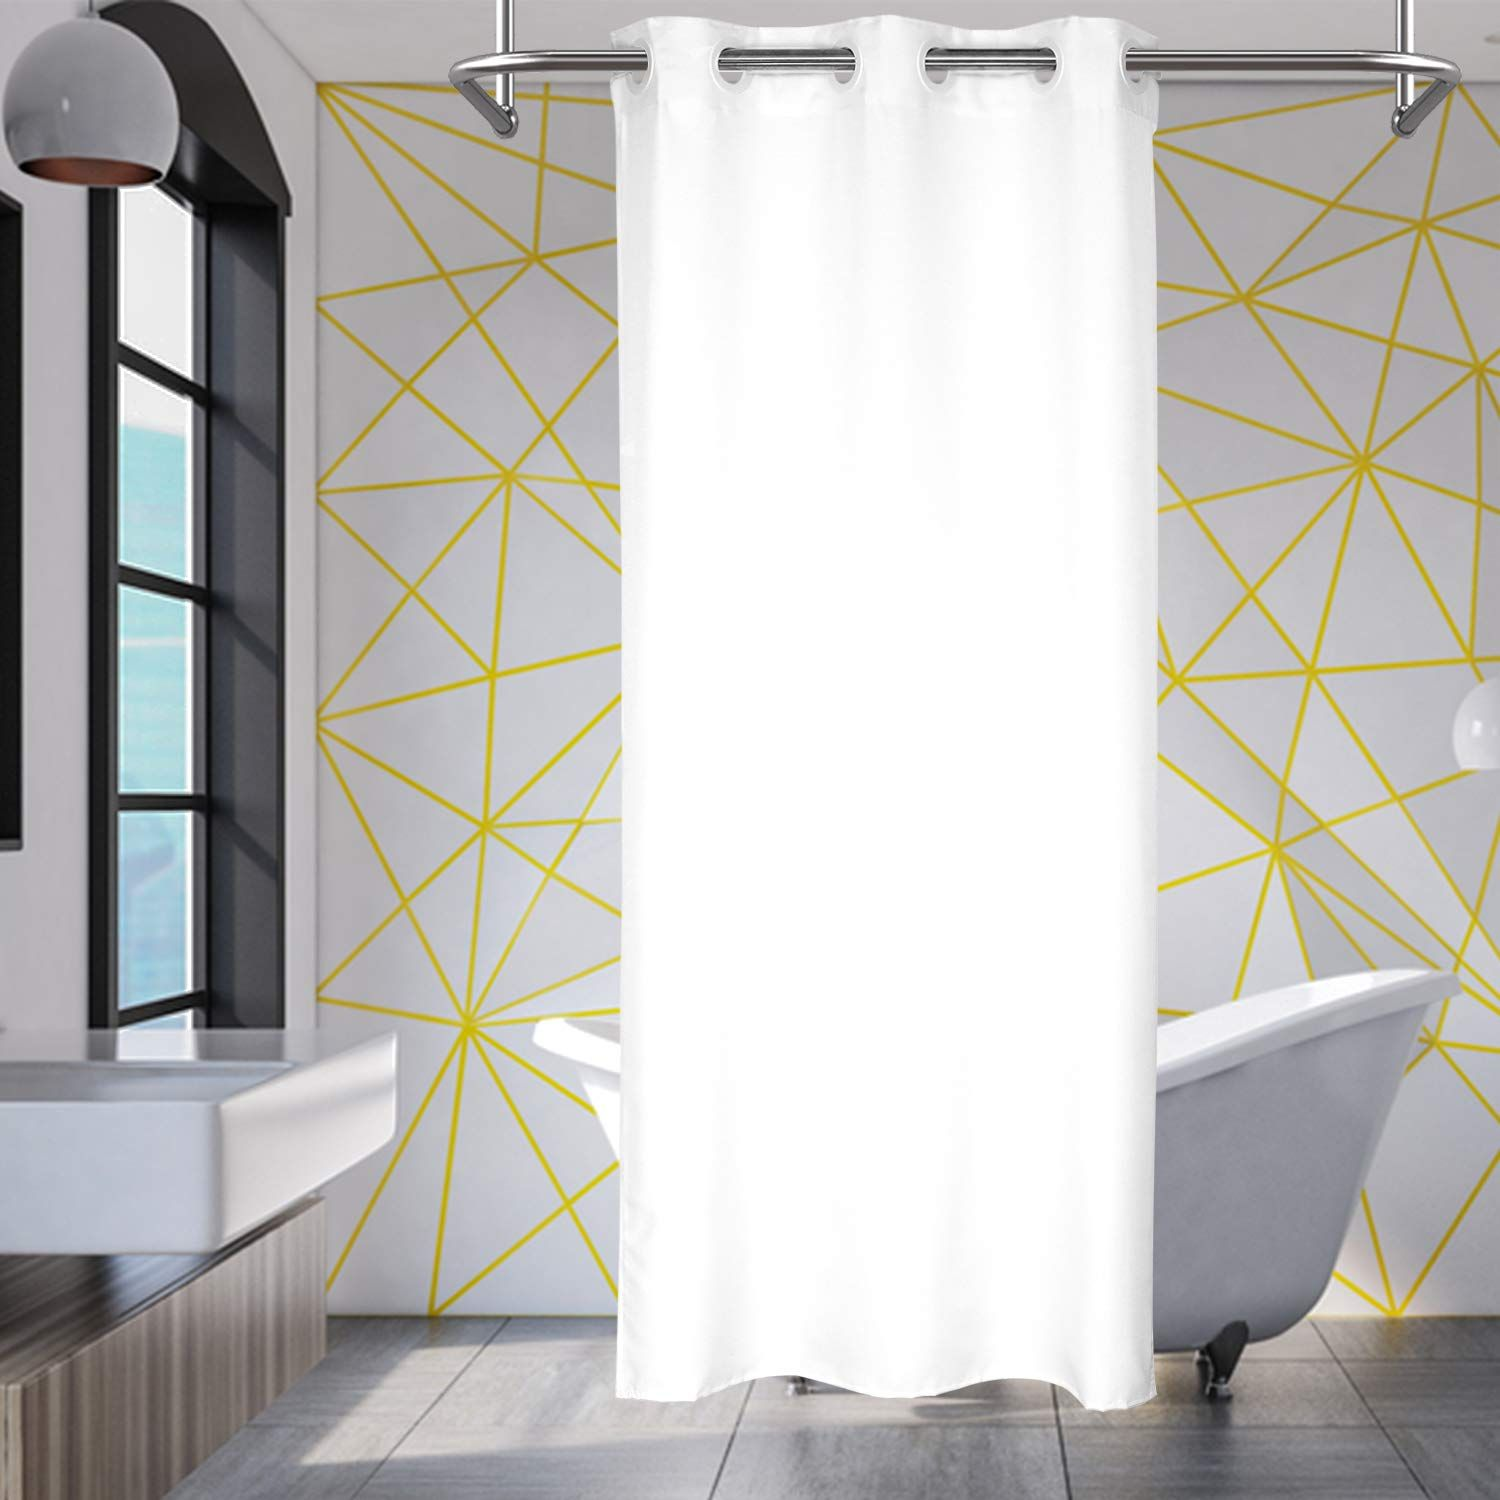 River Dream No Hooks Needed Small Fabric Shower Curtain Or